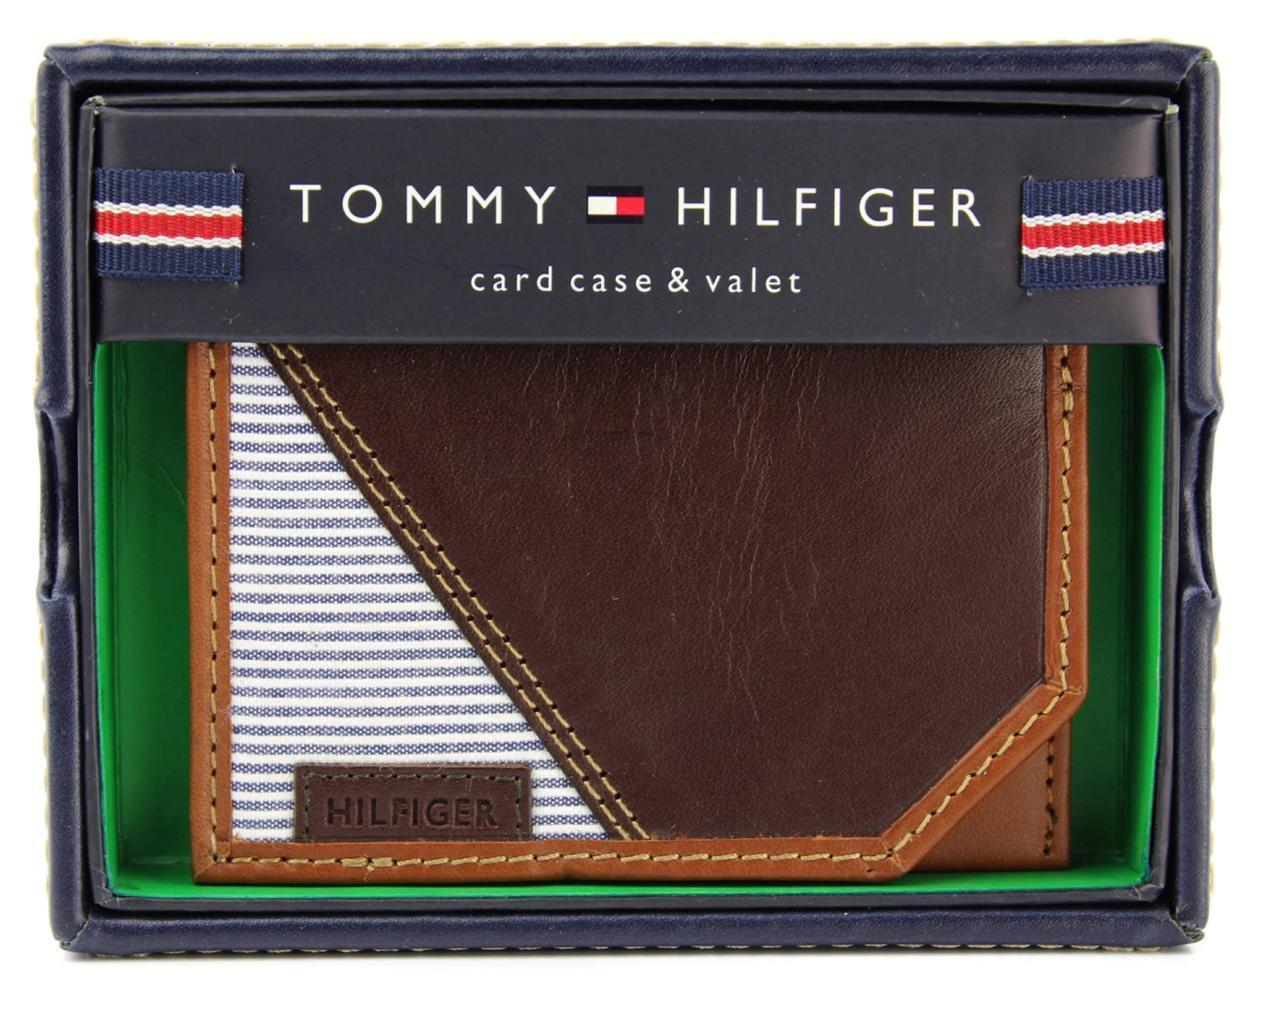 NEW TOMMY HILFIGER MEN'S PREMIUM LEATHER SLIM CARD CASE WALLET BROWN 4268-02